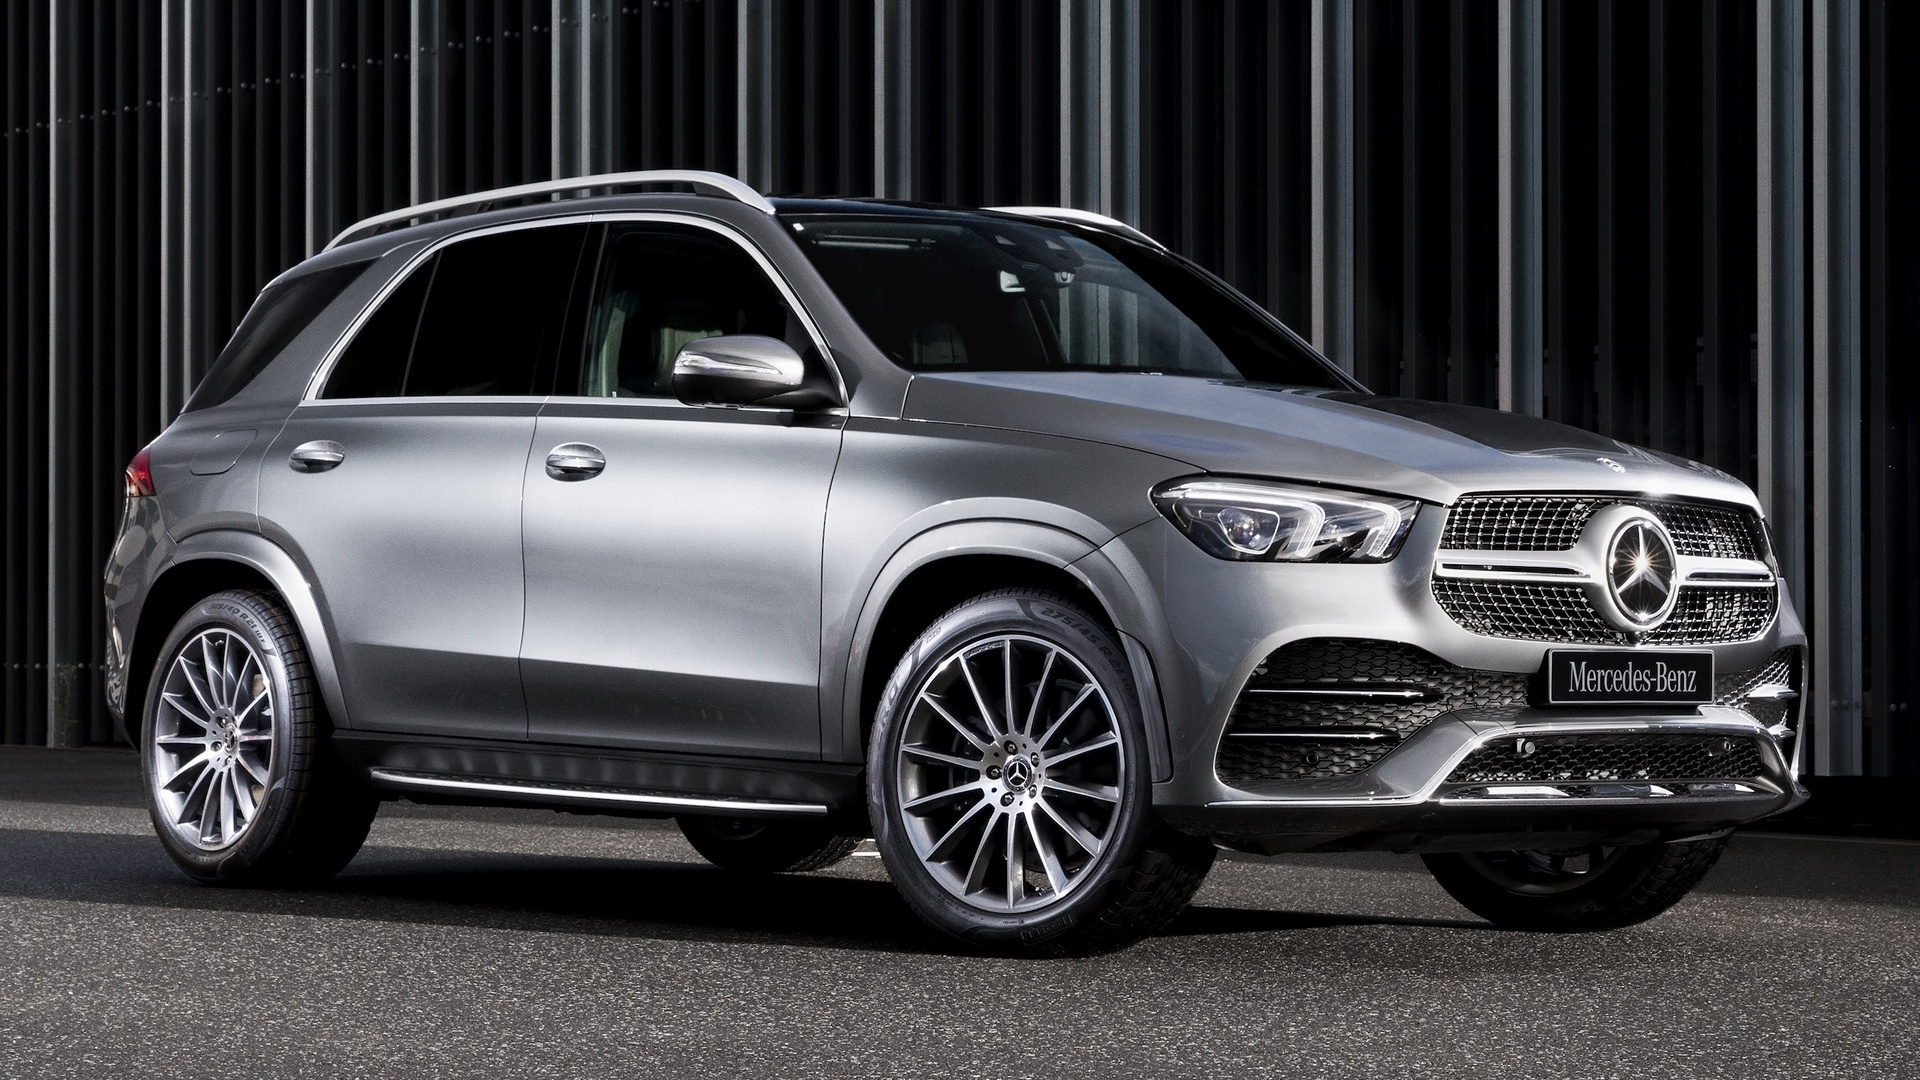 2019 Mercedes-Benz GLE-Class AMG Line (AU) - Wallpapers ...